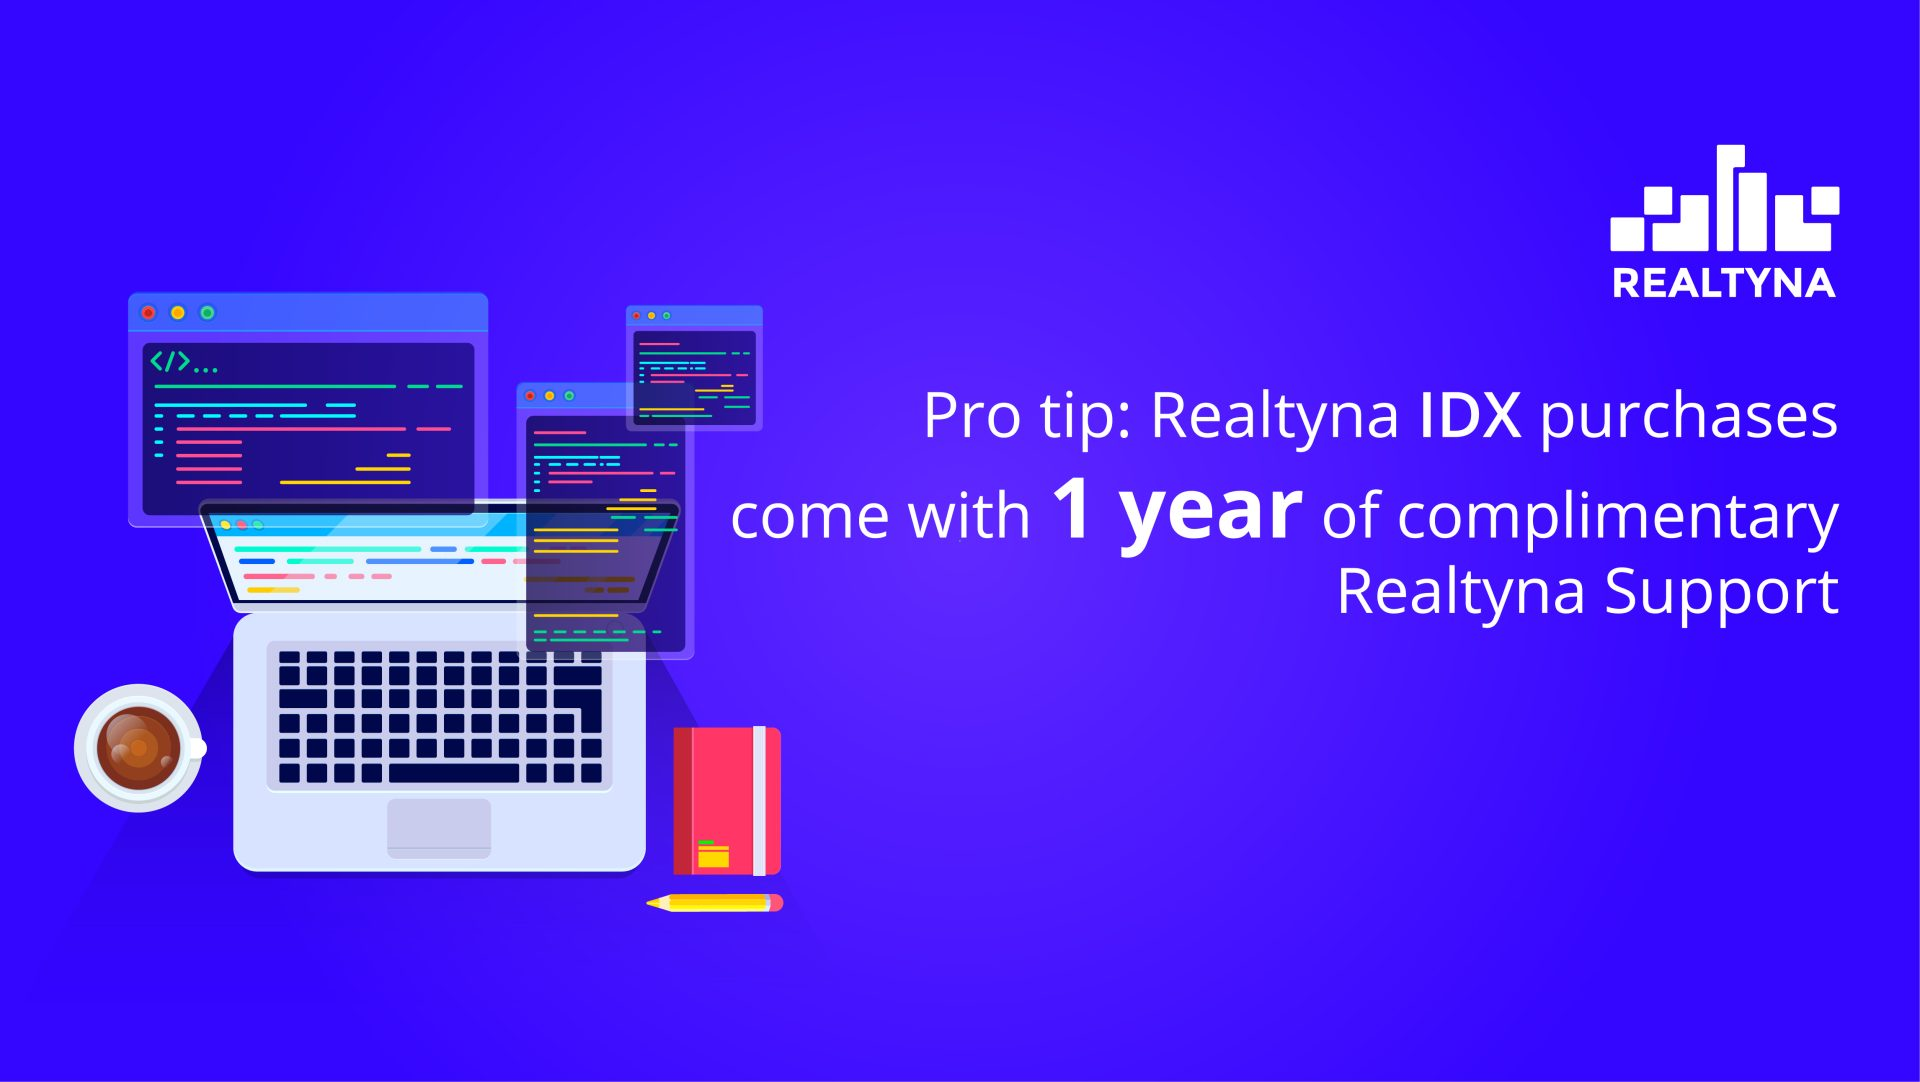 realtyna support